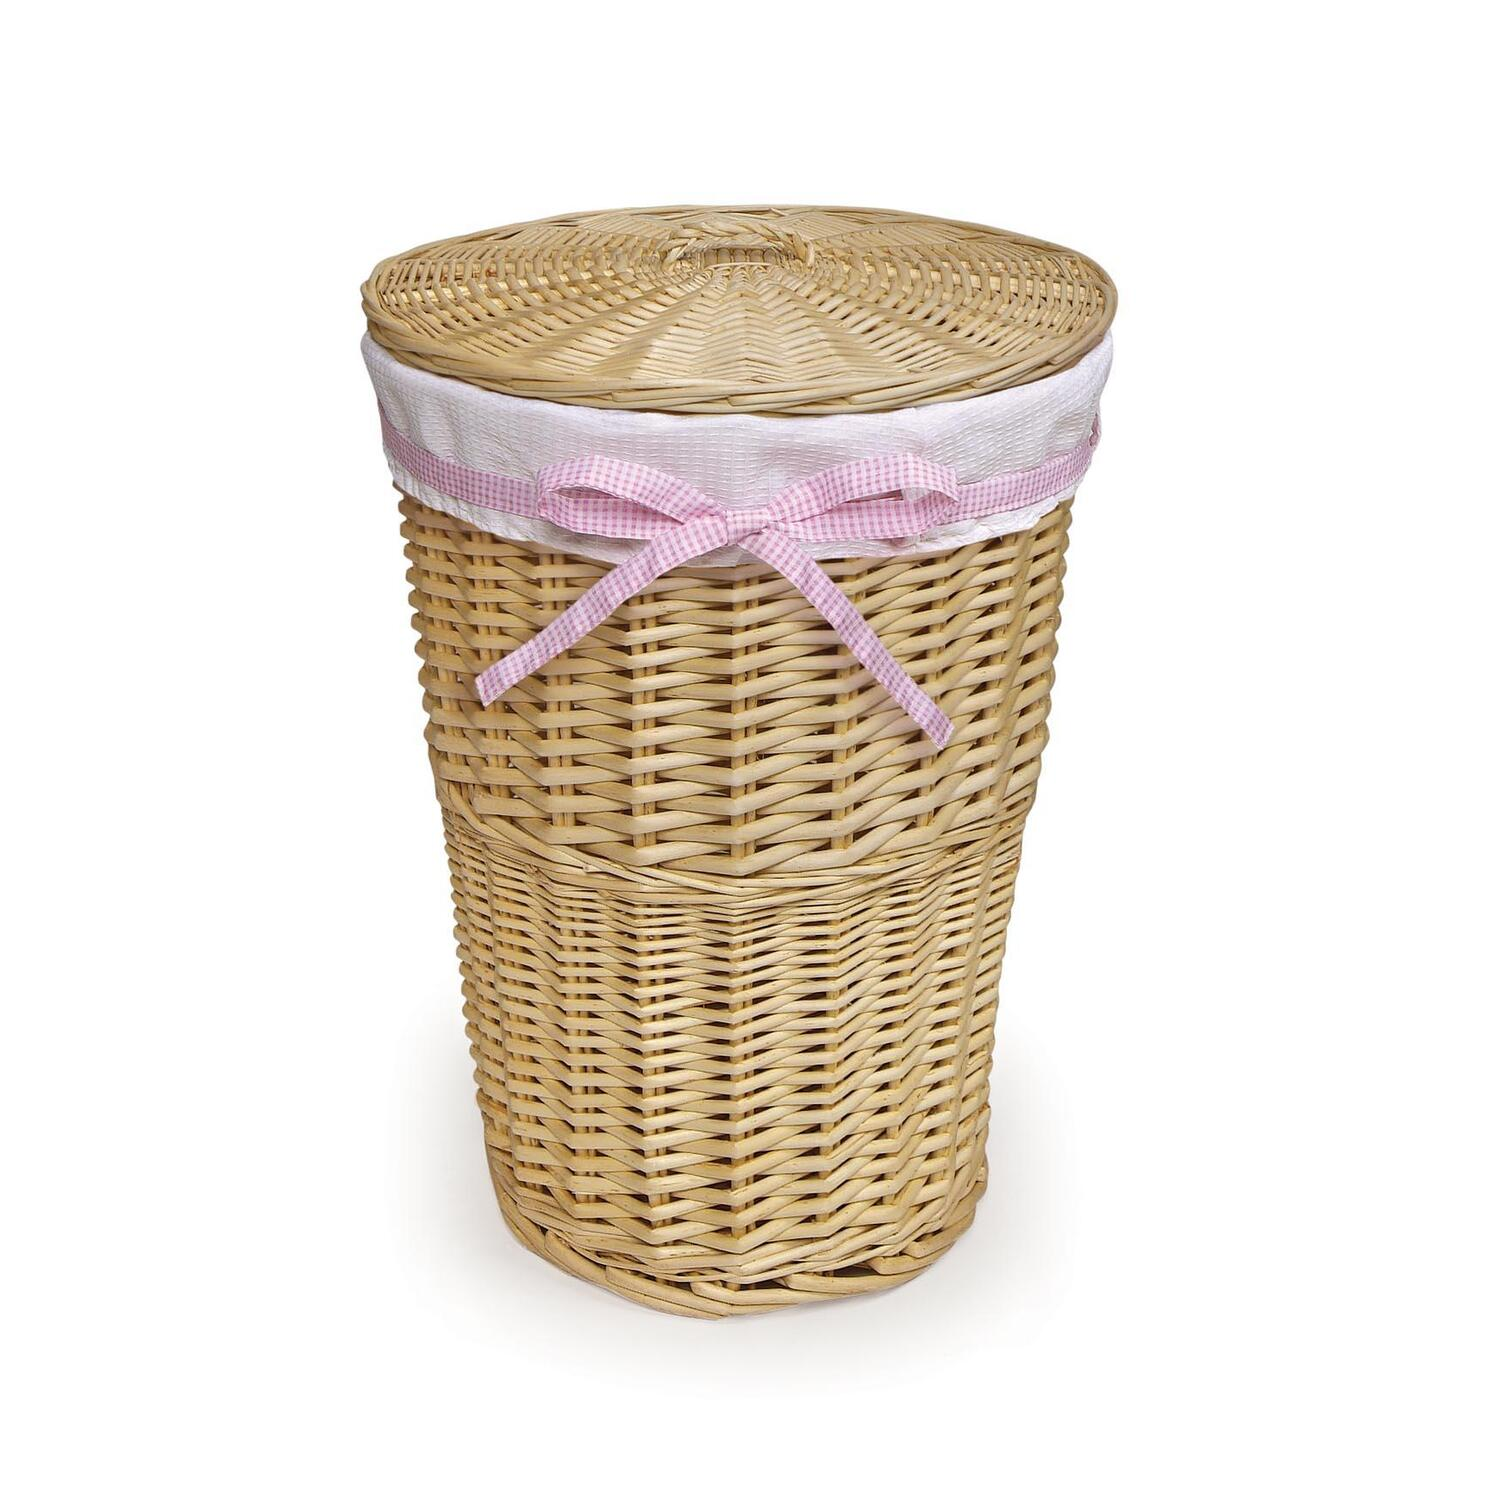 Animal Wicker Hamper Badger Basket Round Rattan Hamper By Oj Commerce 0193n